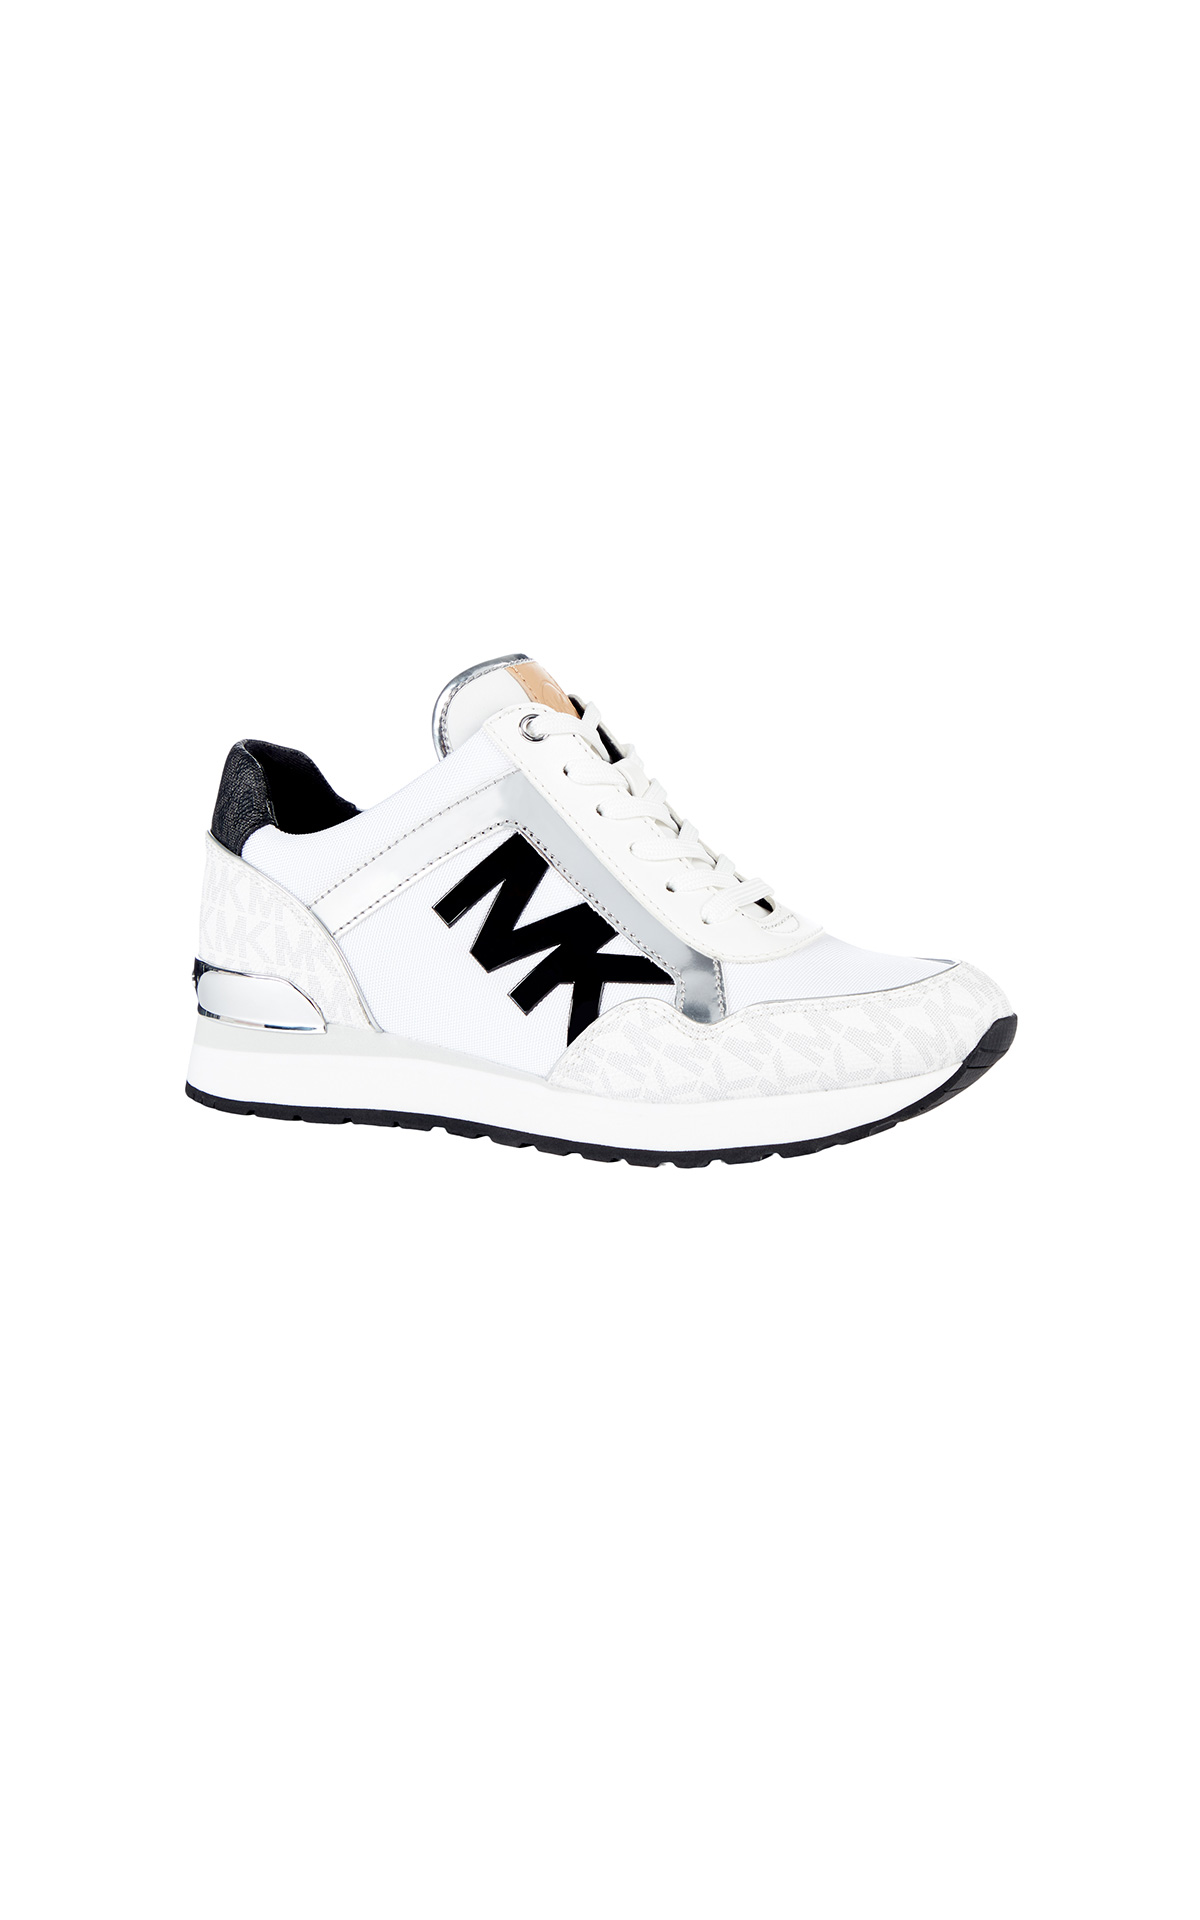 Michael Kors Maddy trainer in bright white at The Bicester Village Shopping Collection